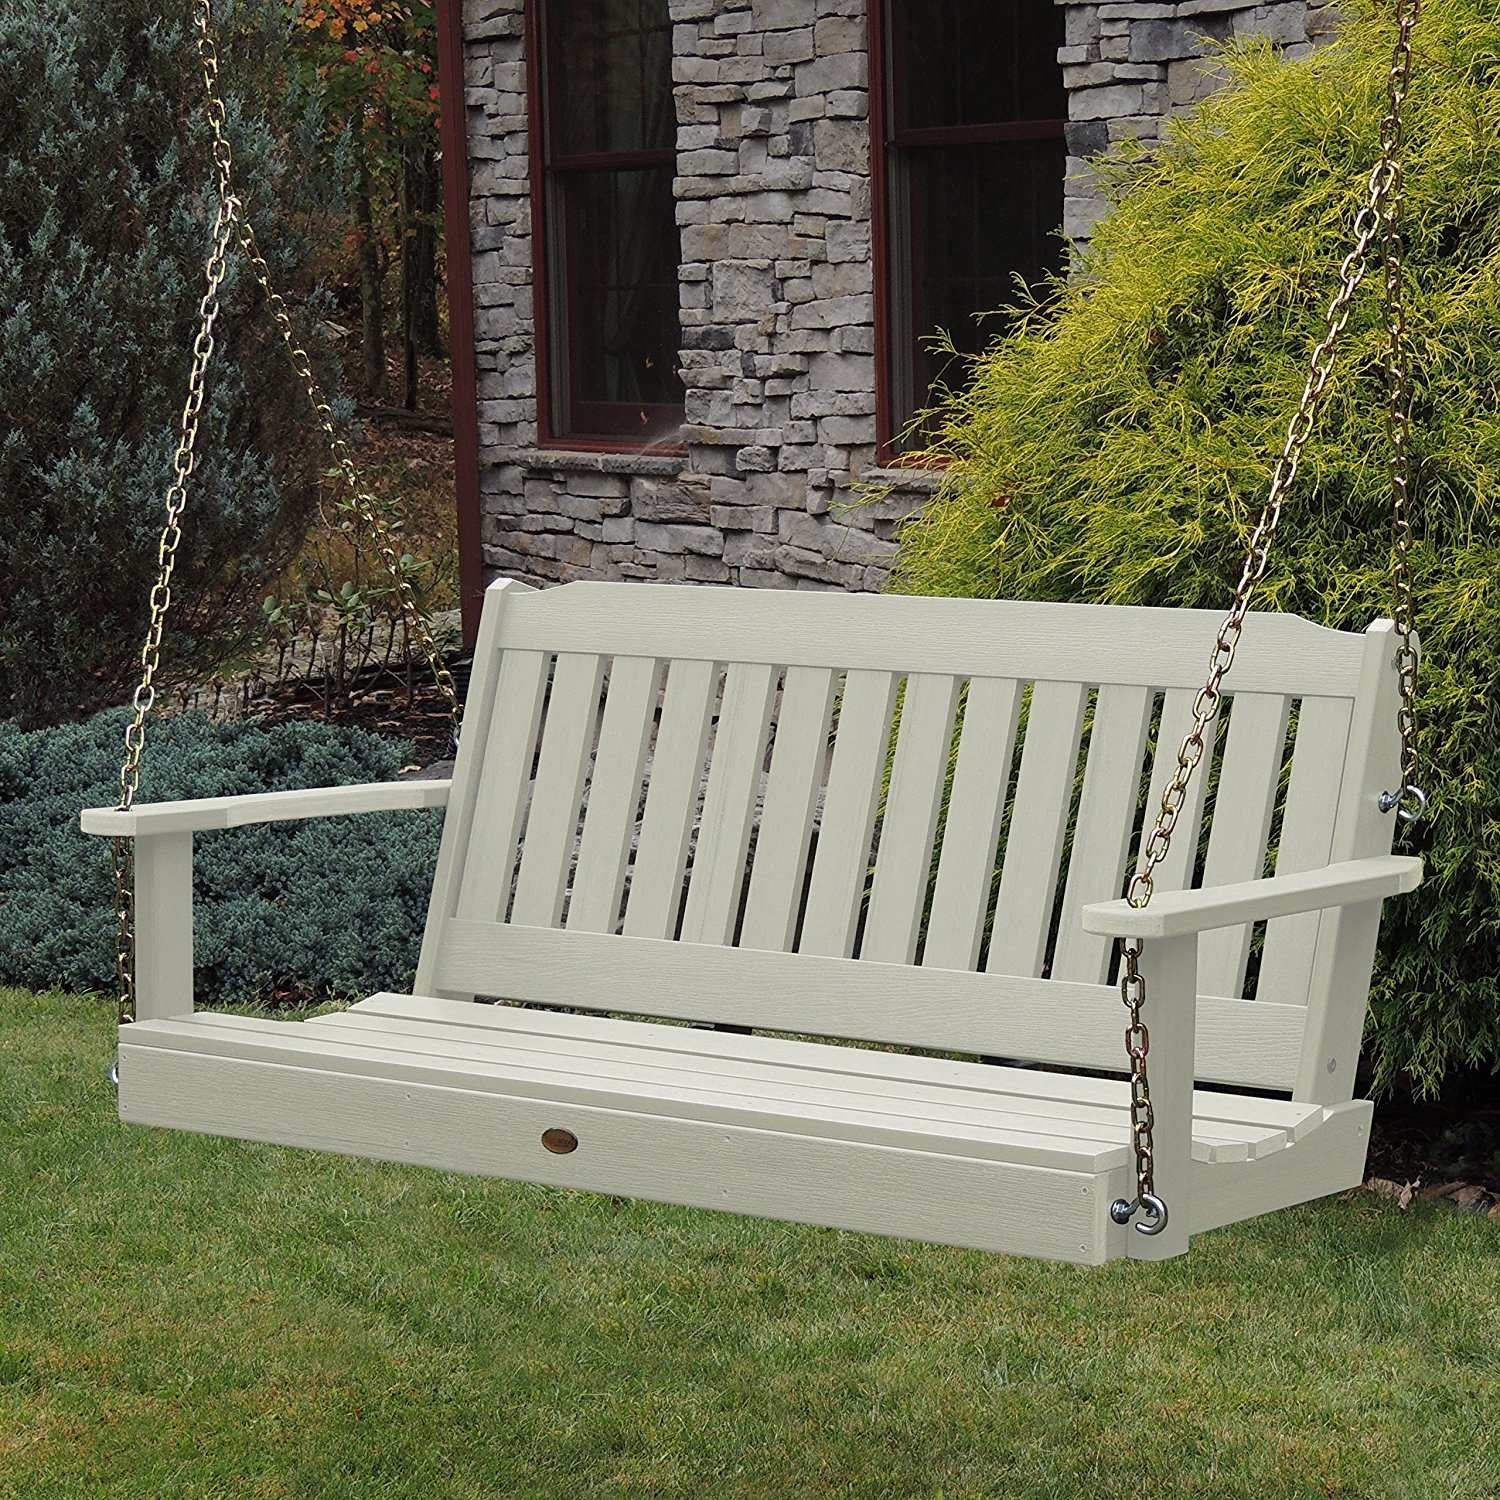 Polywood Porch Swing Reviews And Information Outsidemodern